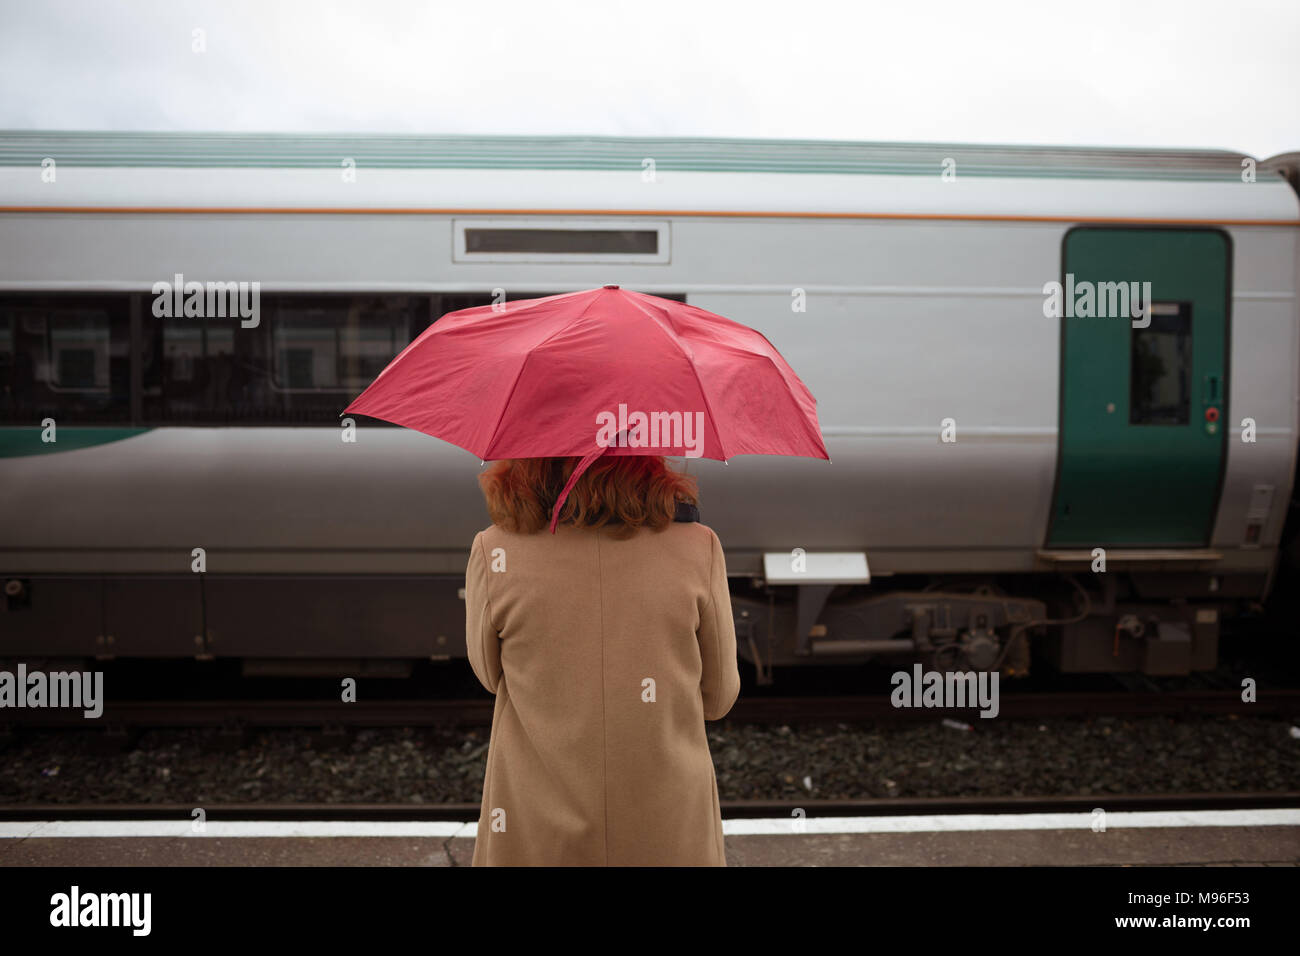 Beautiful young woman with umbrella waiting for train on platform - Stock Image